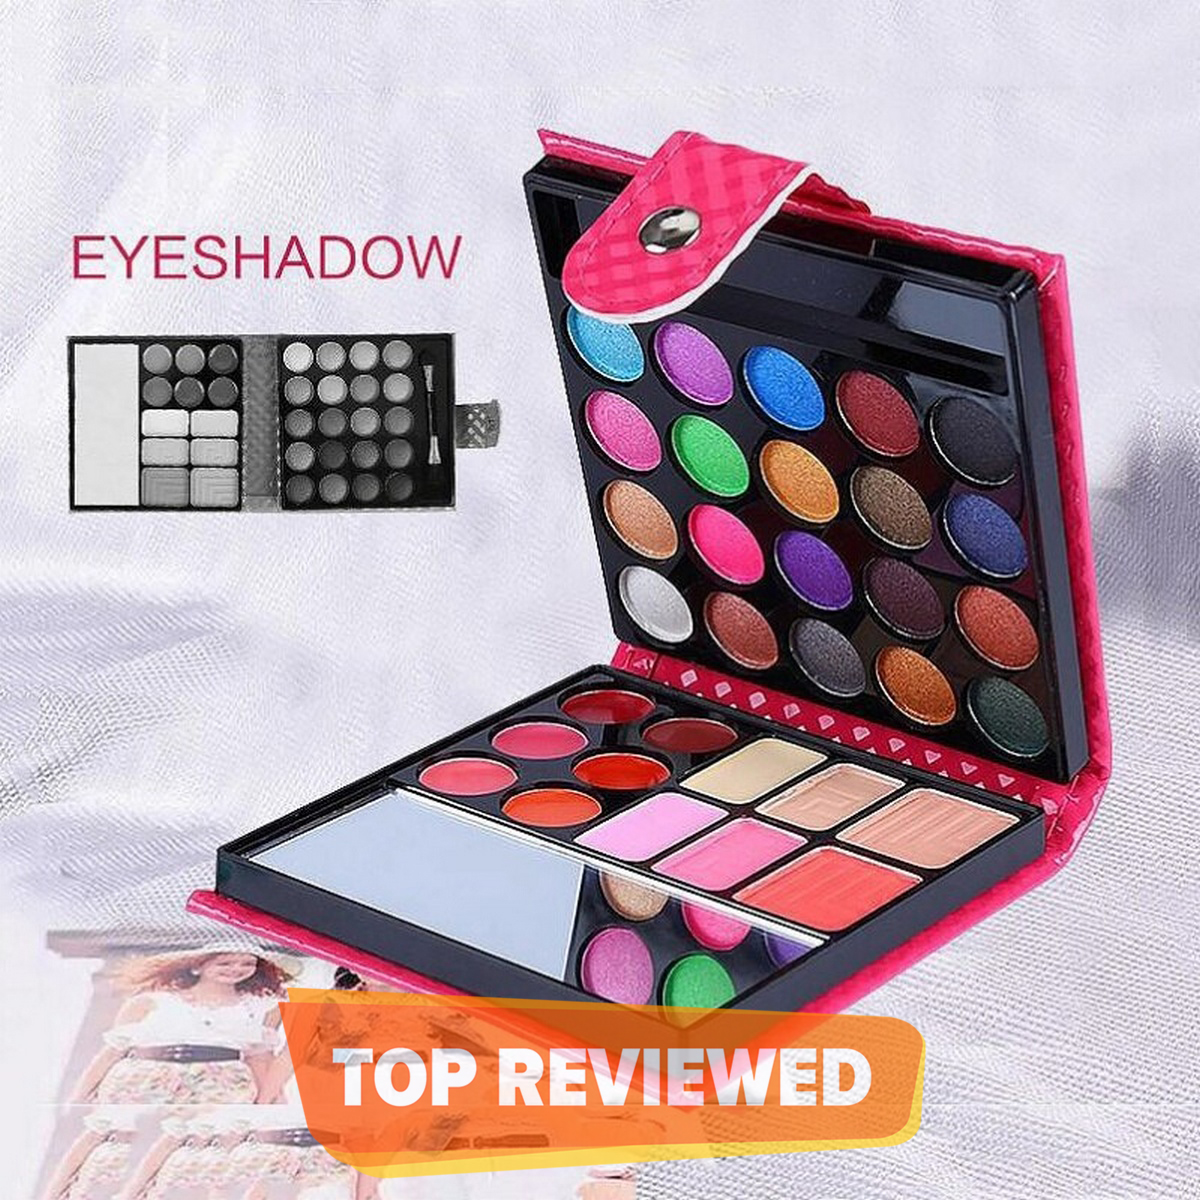 Professional Makeup Kit Eyeshadow Palette Lip Gloss Blush Concealer All in One Makeup Kit - 20 Eyeshadow, 6 Lip Glosses, 3 Blushers, 2 Powder, 1 Concealer, 1 Mirror, 1 Brush, Make Up Gift Set for Teen Girls, Beginners And Pros